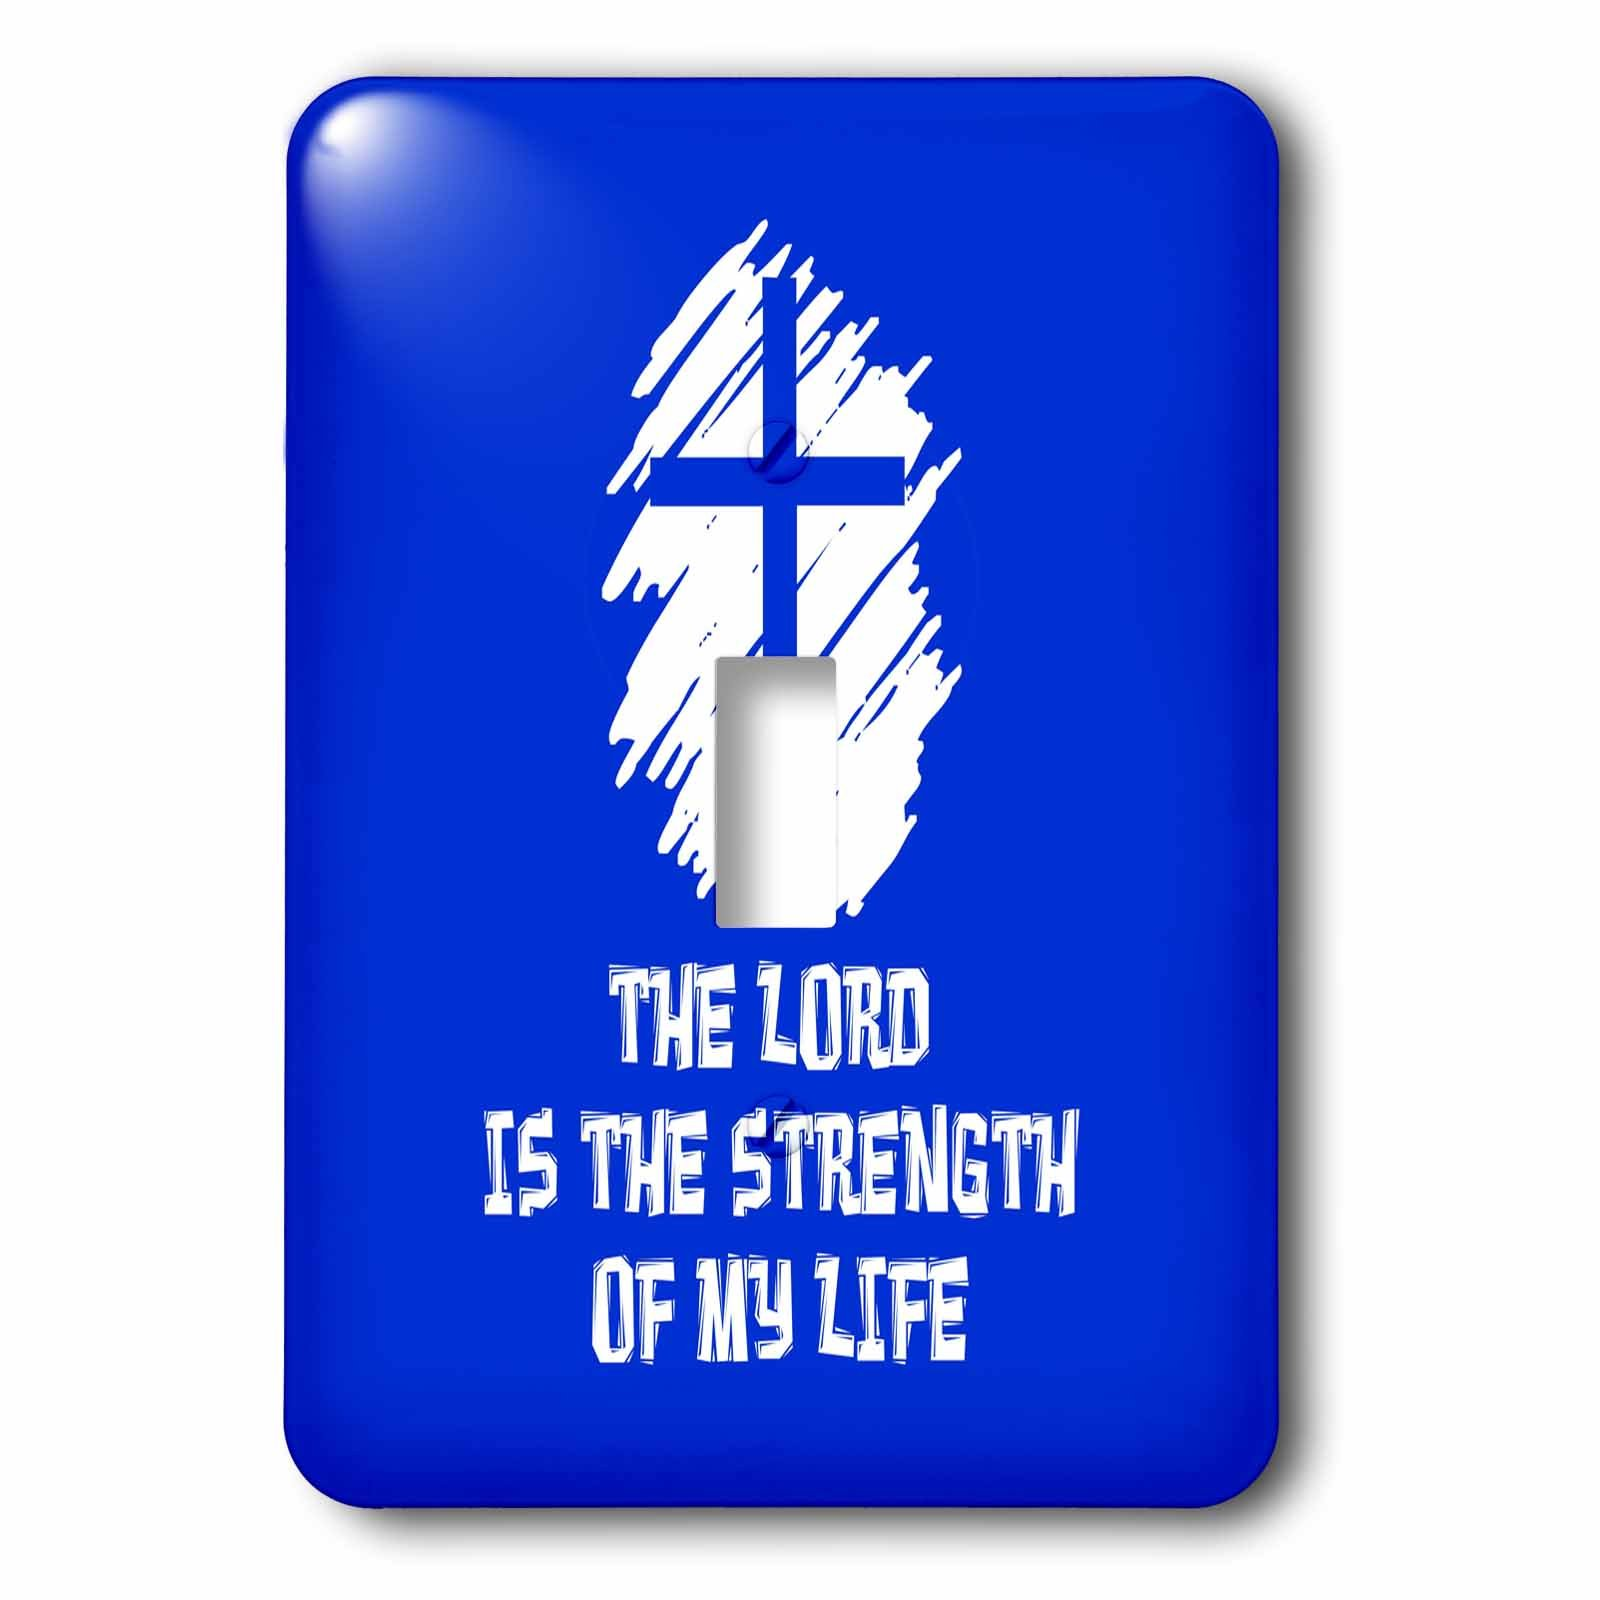 3dRose Alexis Design - Christian - Decorative cross, The Lord is the strength of my life text on blue - Light Switch Covers - single toggle switch (lsp_286197_1) by 3dRose